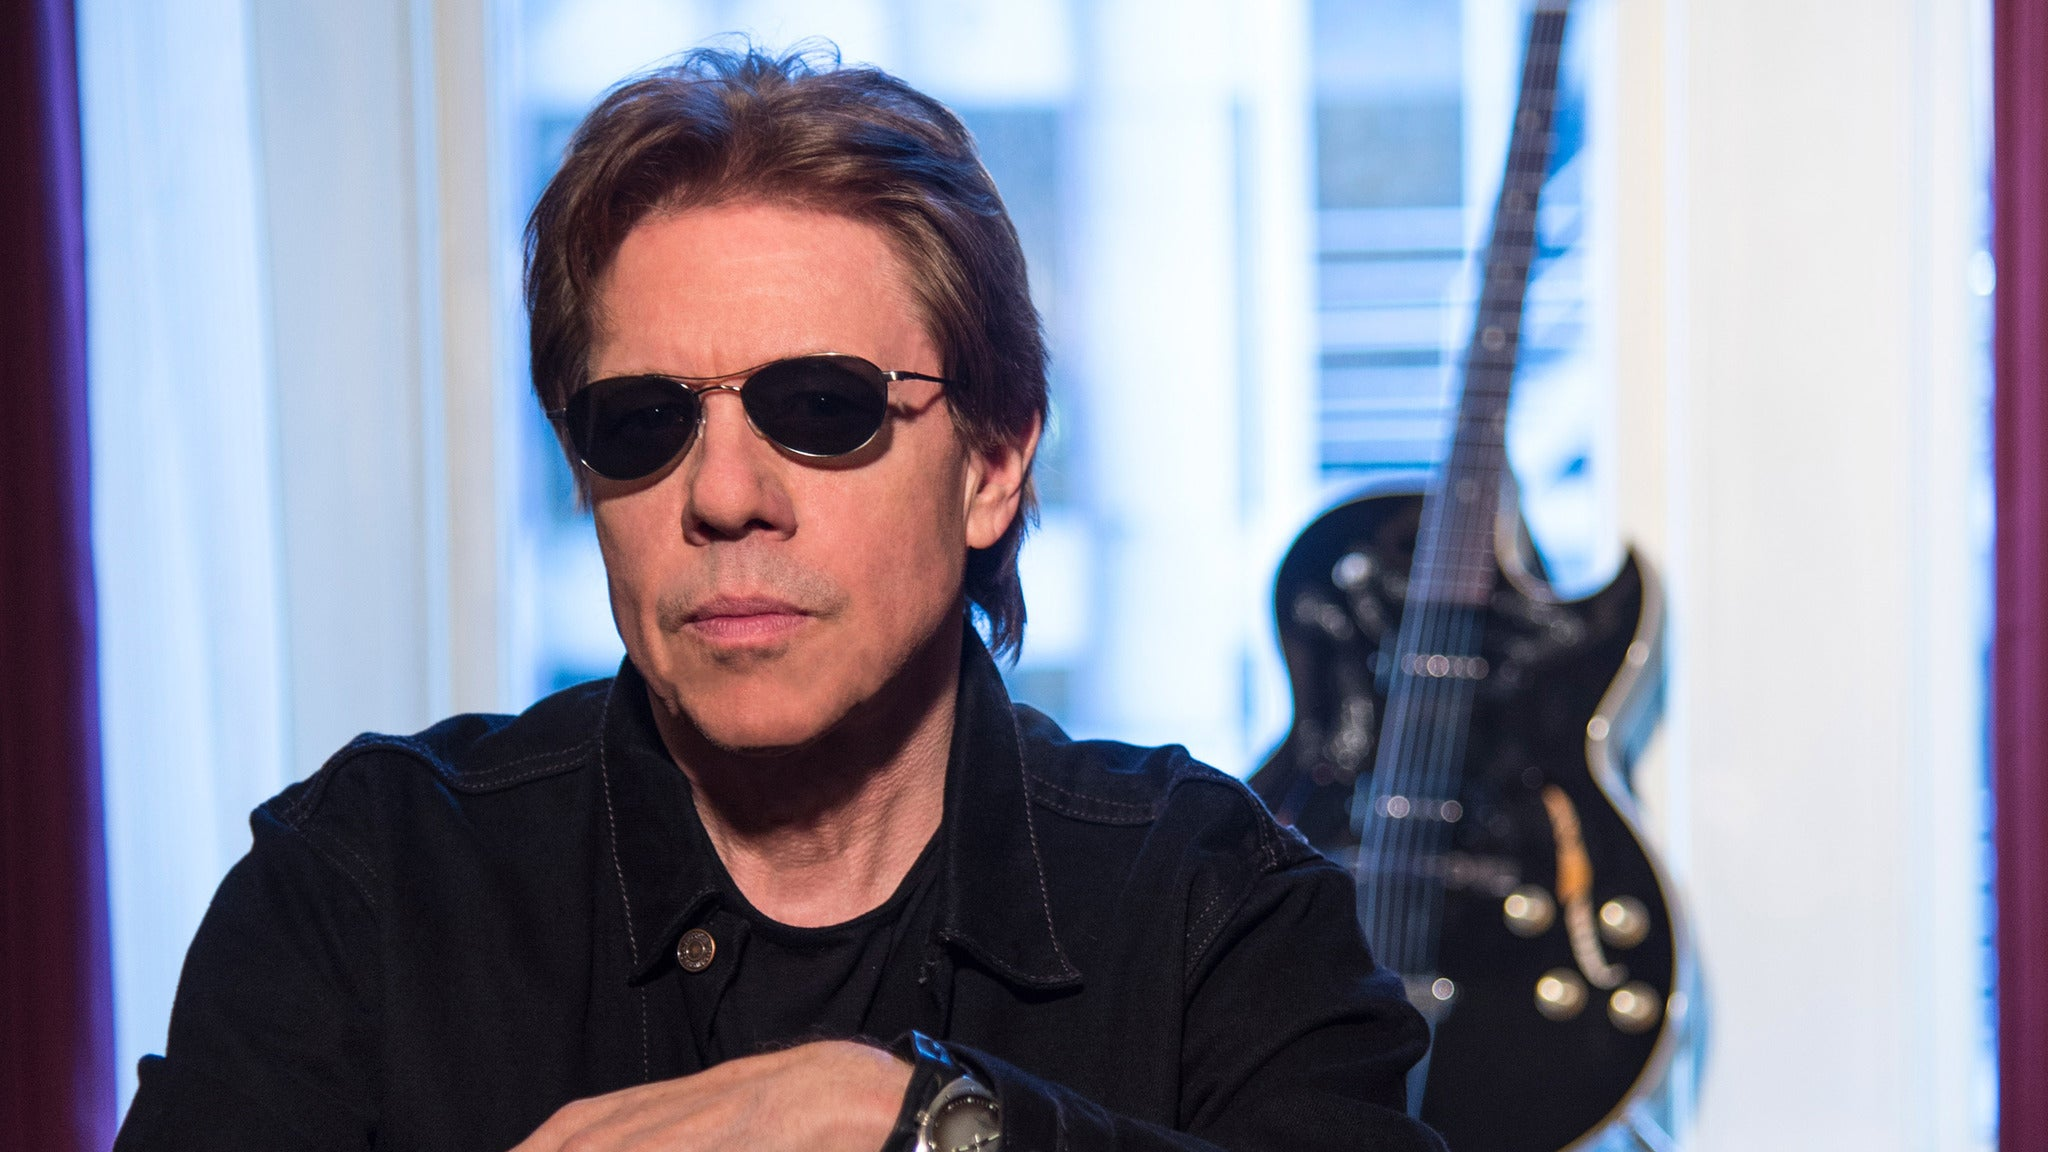 George Thorogood & The Destroyers Good To Be Bad Tour 45 Years of Rock presale password